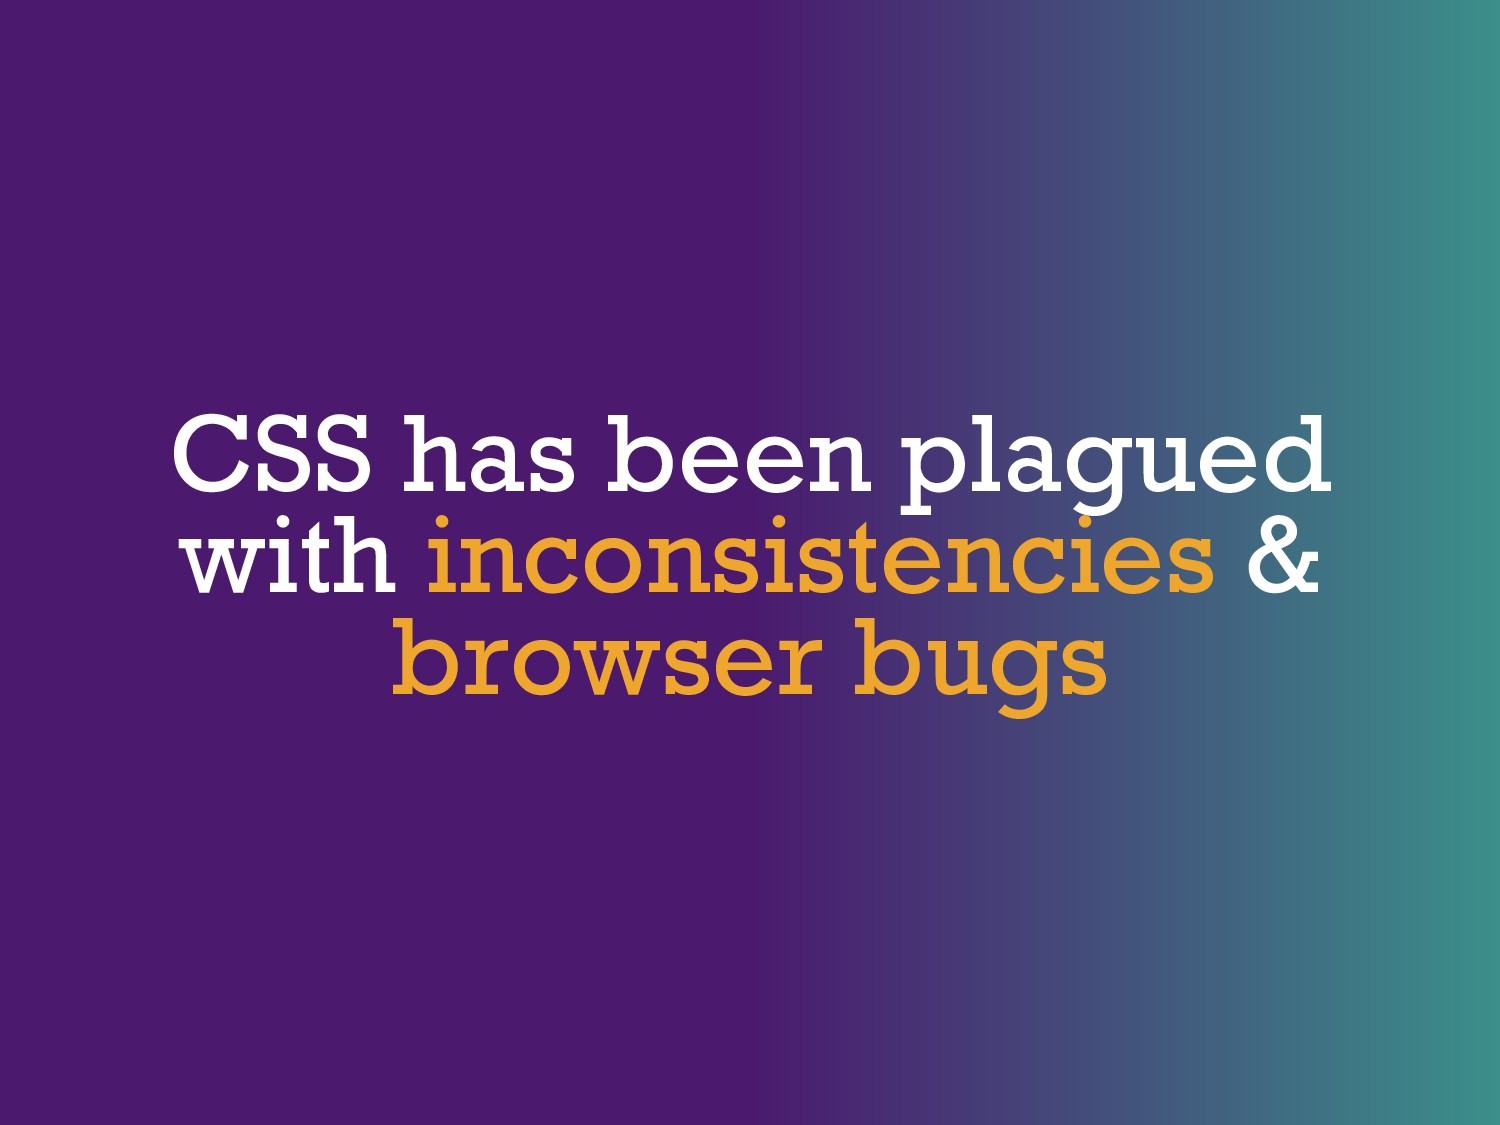 CSS has been plagued with inconsistencies & bro...